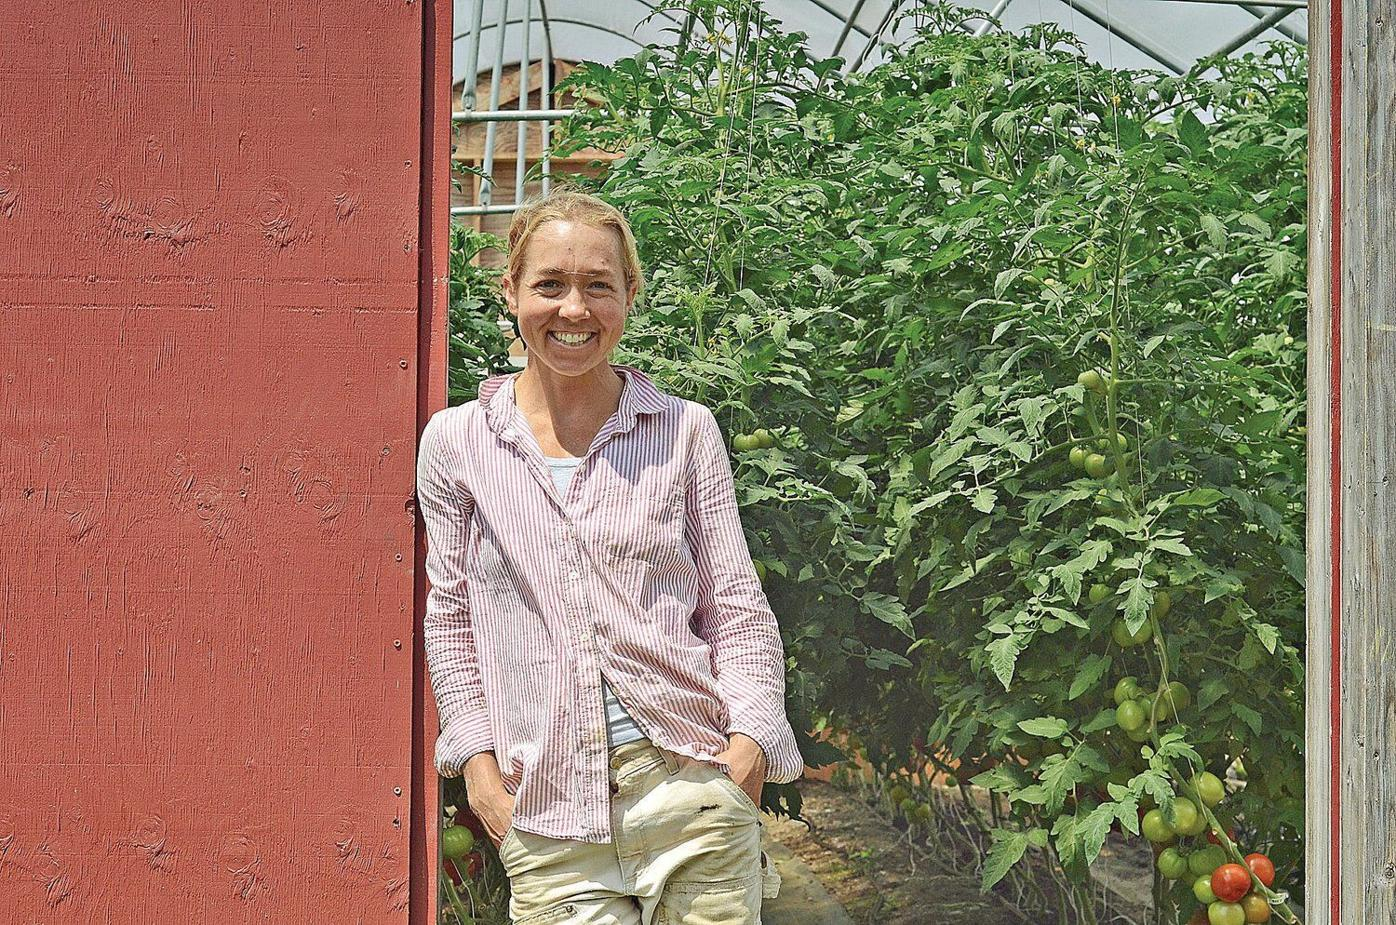 Why Organic A Conversation With Lisa Macdougall Of The Mighty Food Farm Archives Benningtonbanner Com